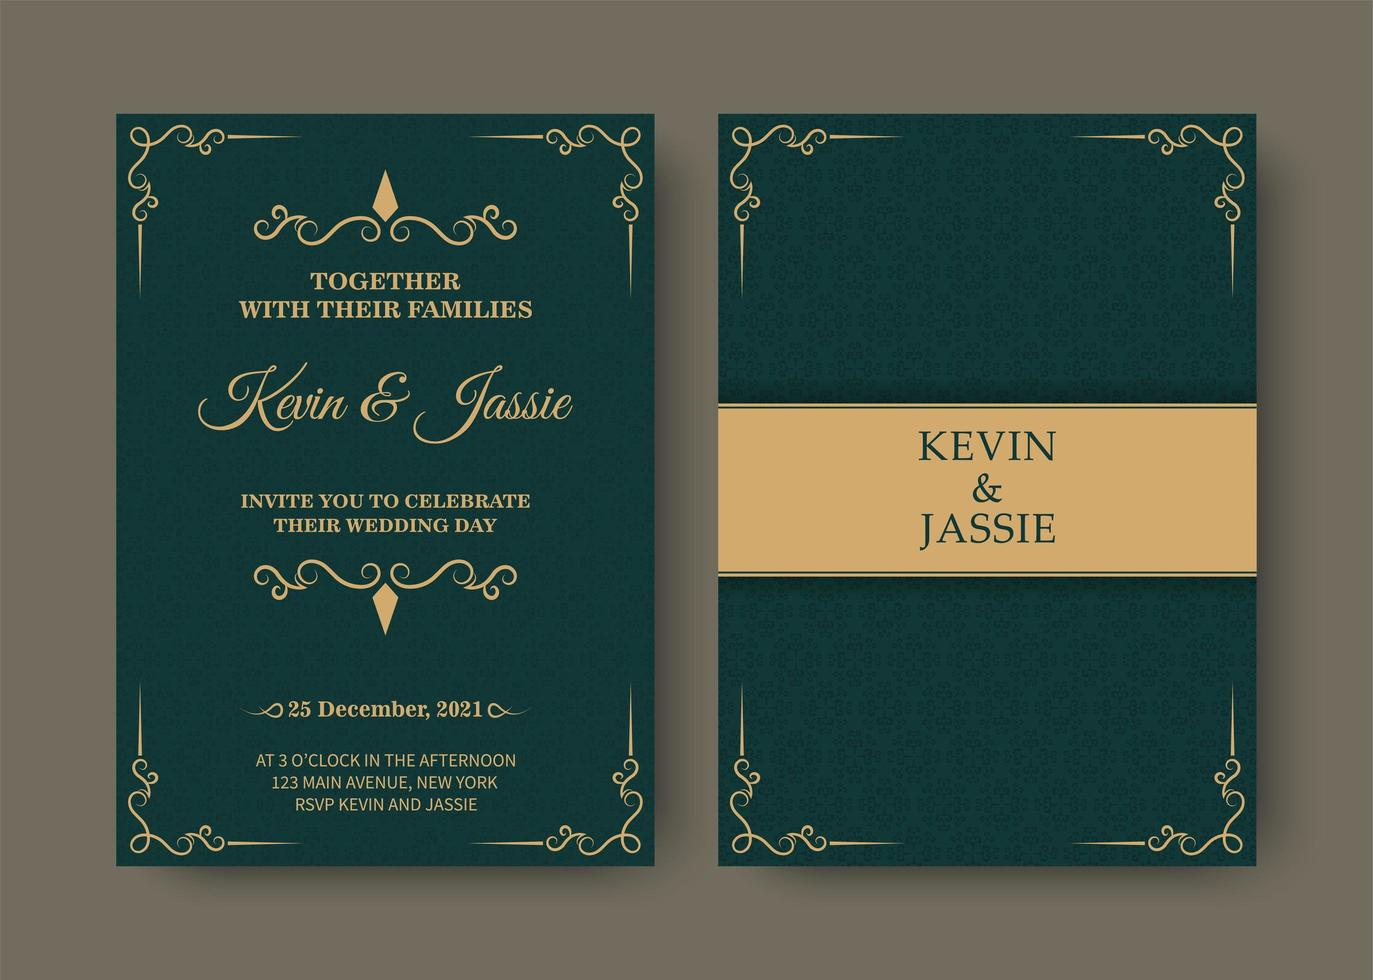 Invitation Card Design In Green And Gold Vintage Style Download Free Vectors Clipart Graphics Vector Art